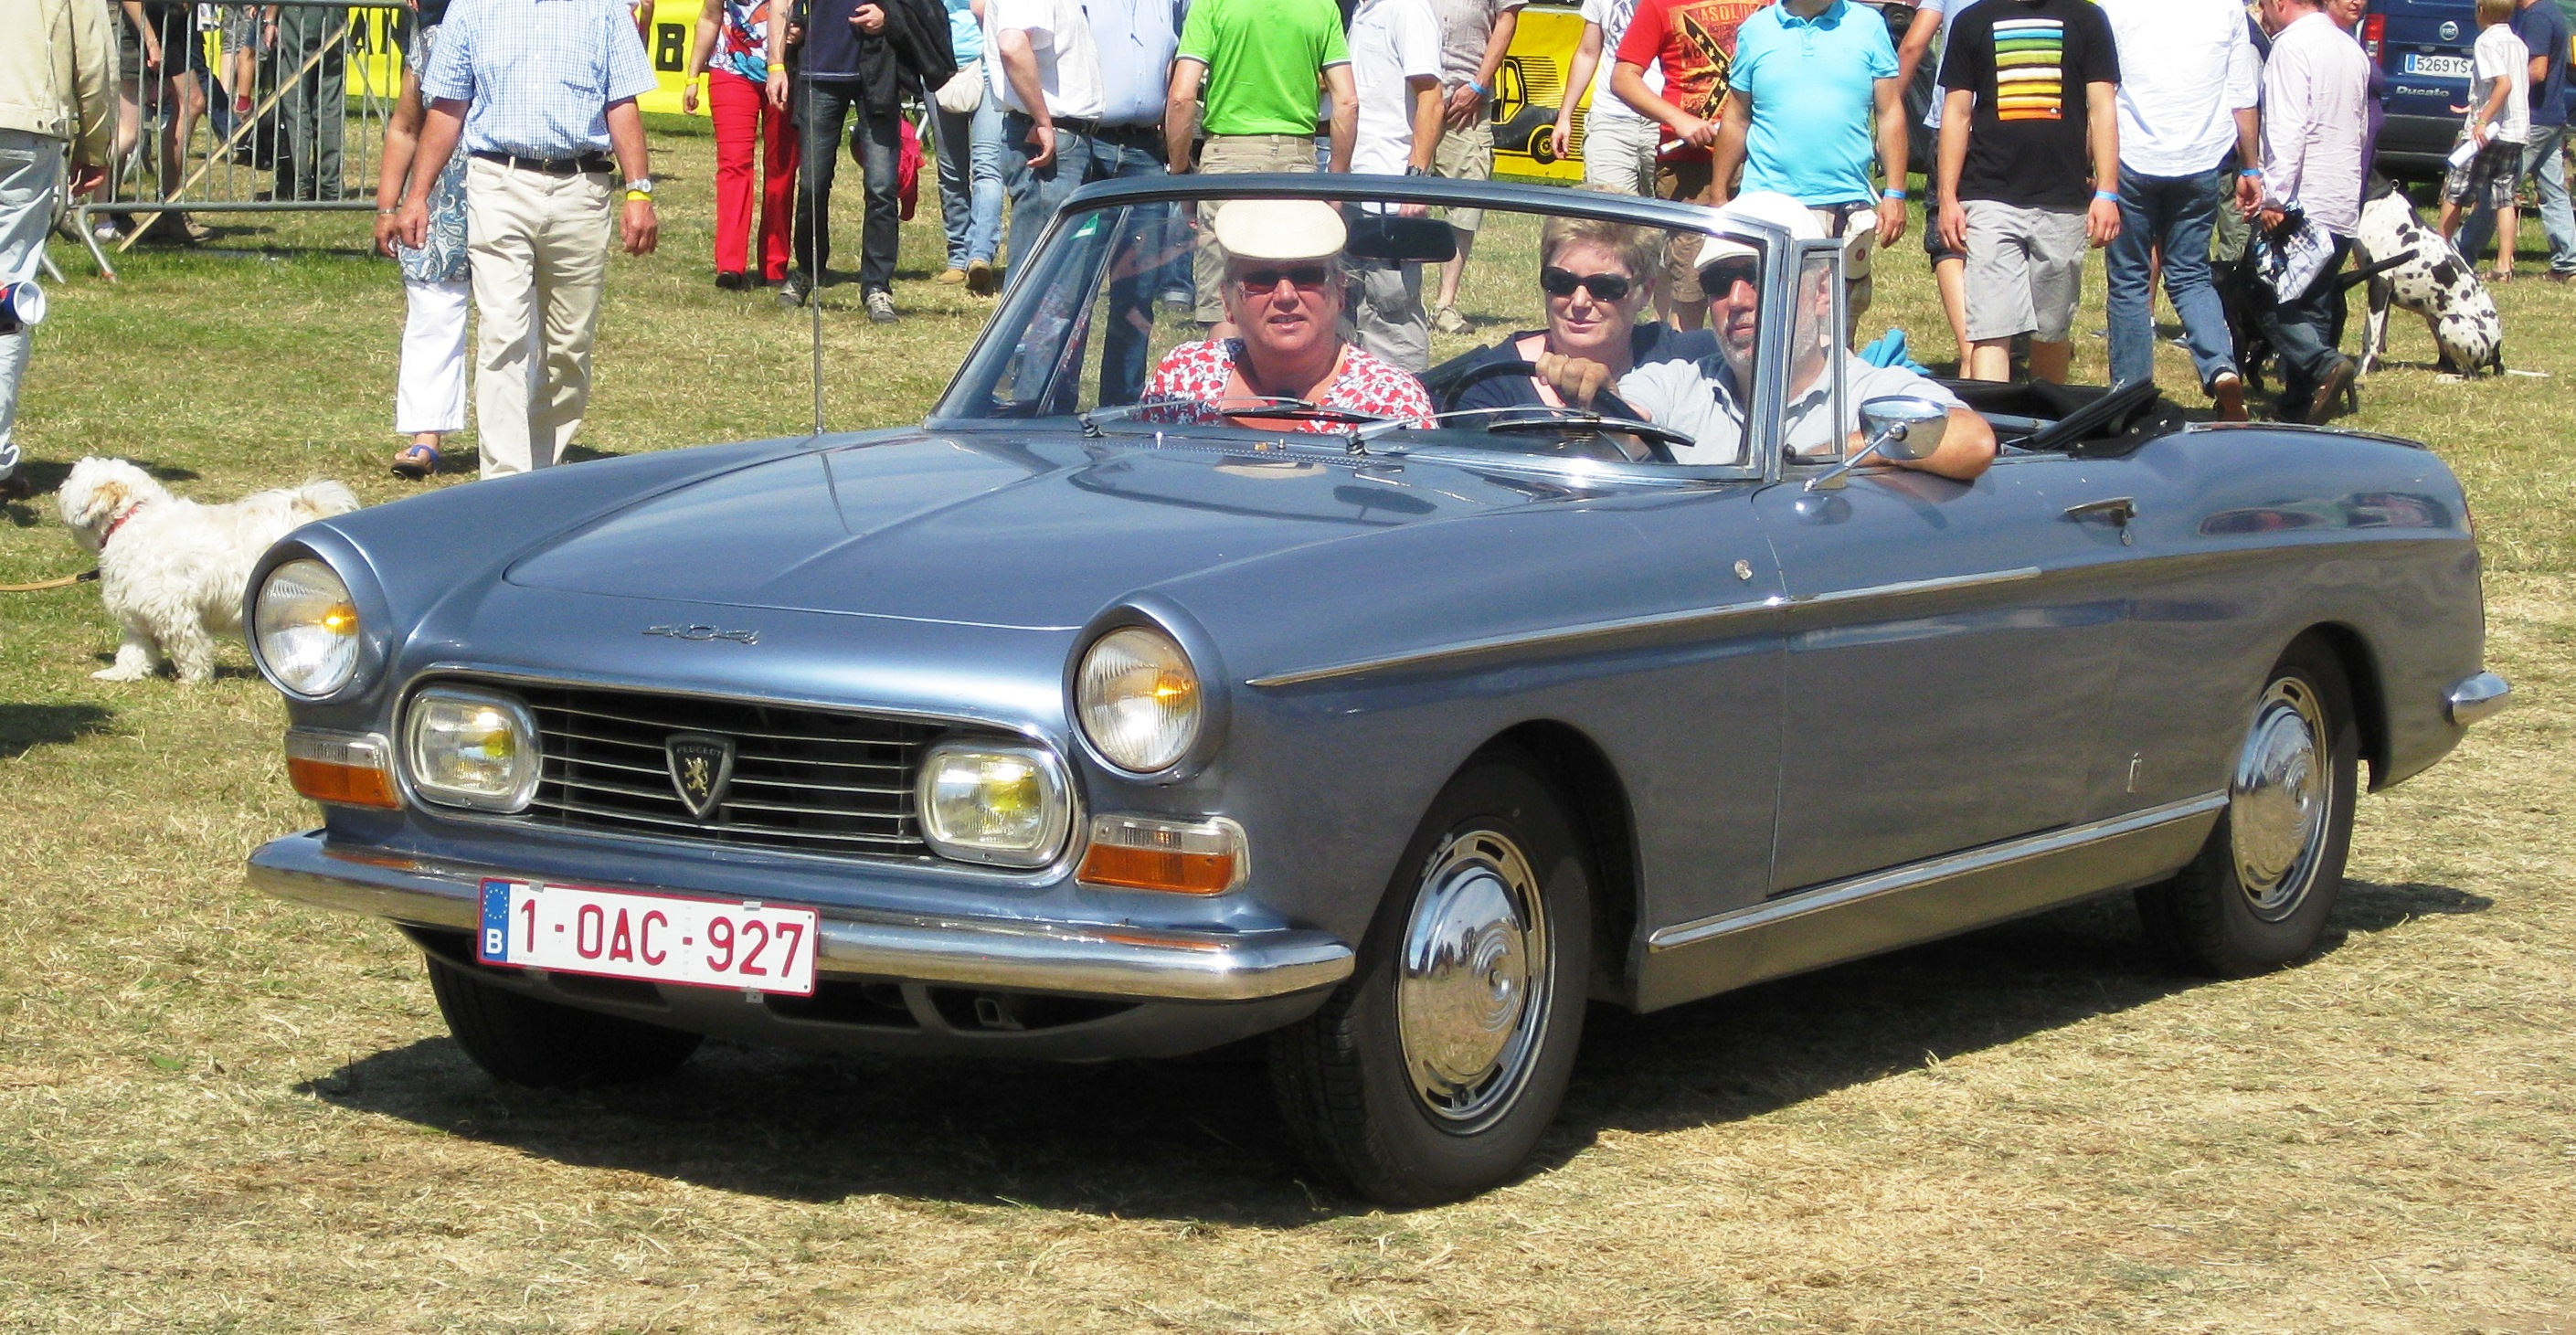 file peugeot 404 cabriolet schaffen diest 2012 jpg. Black Bedroom Furniture Sets. Home Design Ideas